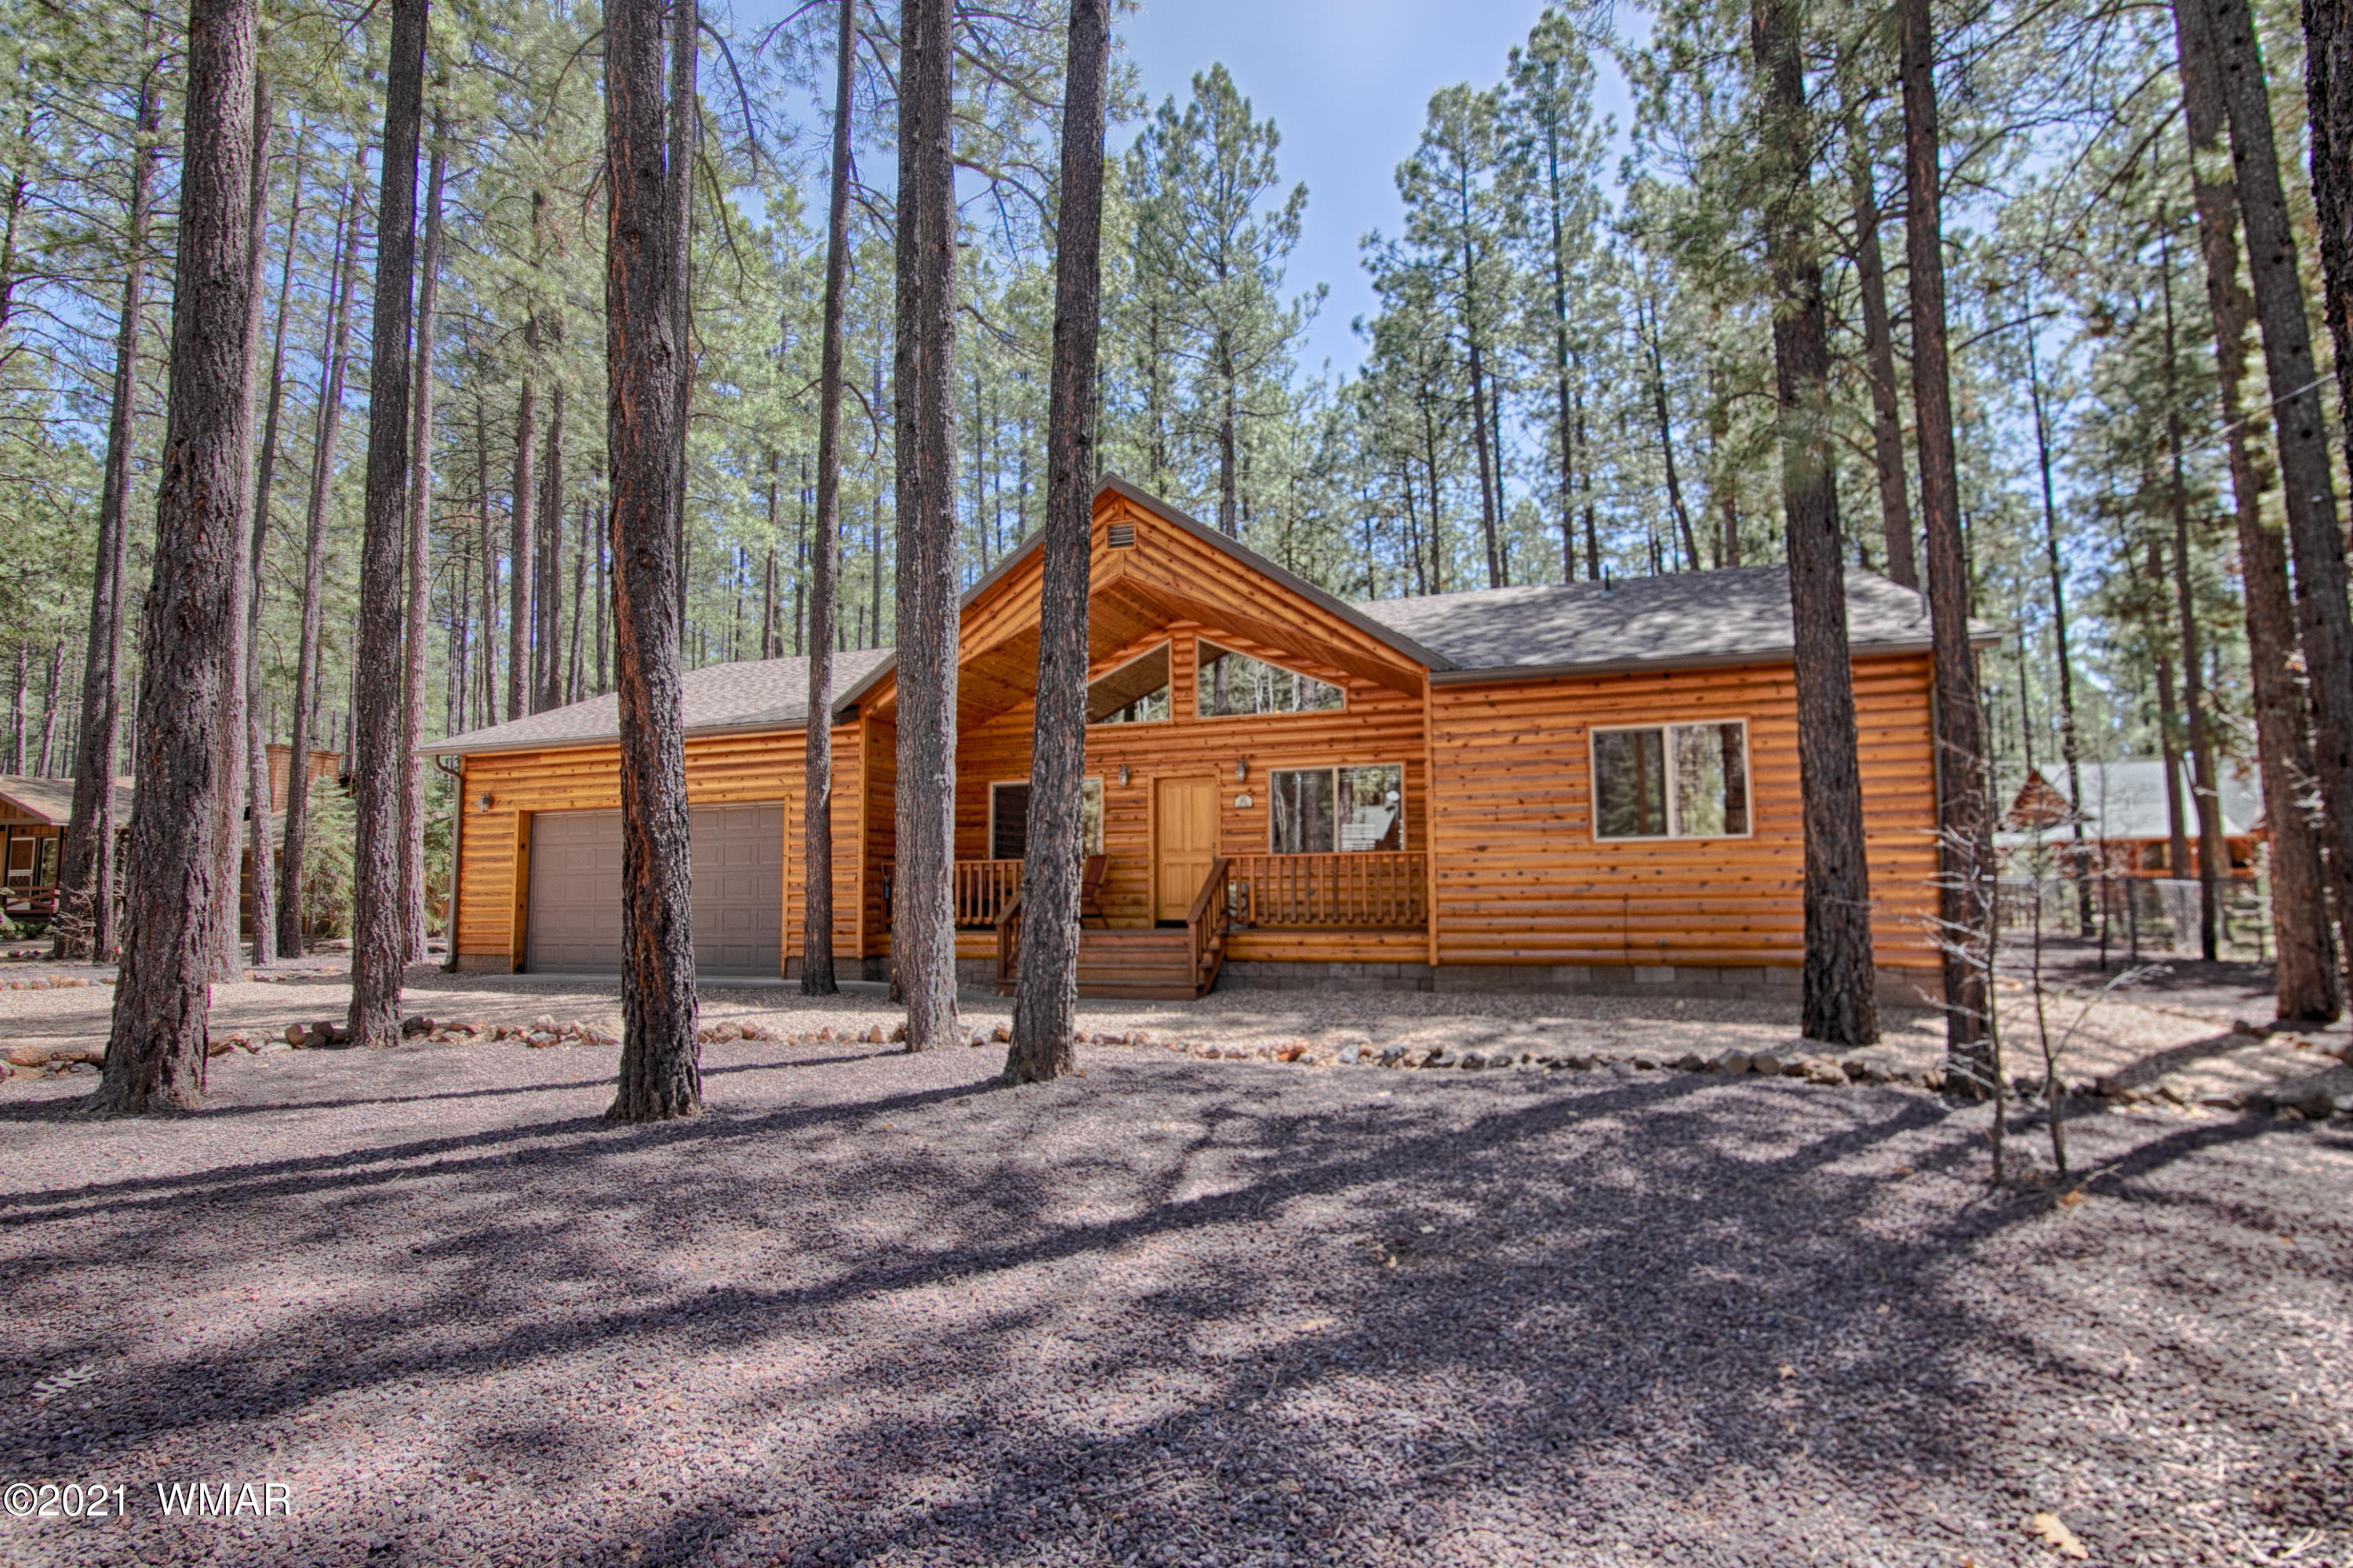 Pride of ownership throughout  in this home located in Pinetop Country Club!  This log sided home nestled amongst tall ponderosa pines is in  immaculate condition. The perfect cabin in the woods! Vaulted wood ceilings, hardwood oak flooring, hickory cabinets,  corian countertops, solid wood doors, stone fireplace with gas starter, split bedroom floorplan, large covered deck in the back to enjoy the cool mountain air are just a few of the many amenites this home has to offer. An inventory  list of furnishings that stay will be provided. There are 5 large area rugs available to purchase  outside of escrow. Use showing time to make appointment. Sellers are sometimes up,  so an appoinment my be required at times. Virtual tour to come.